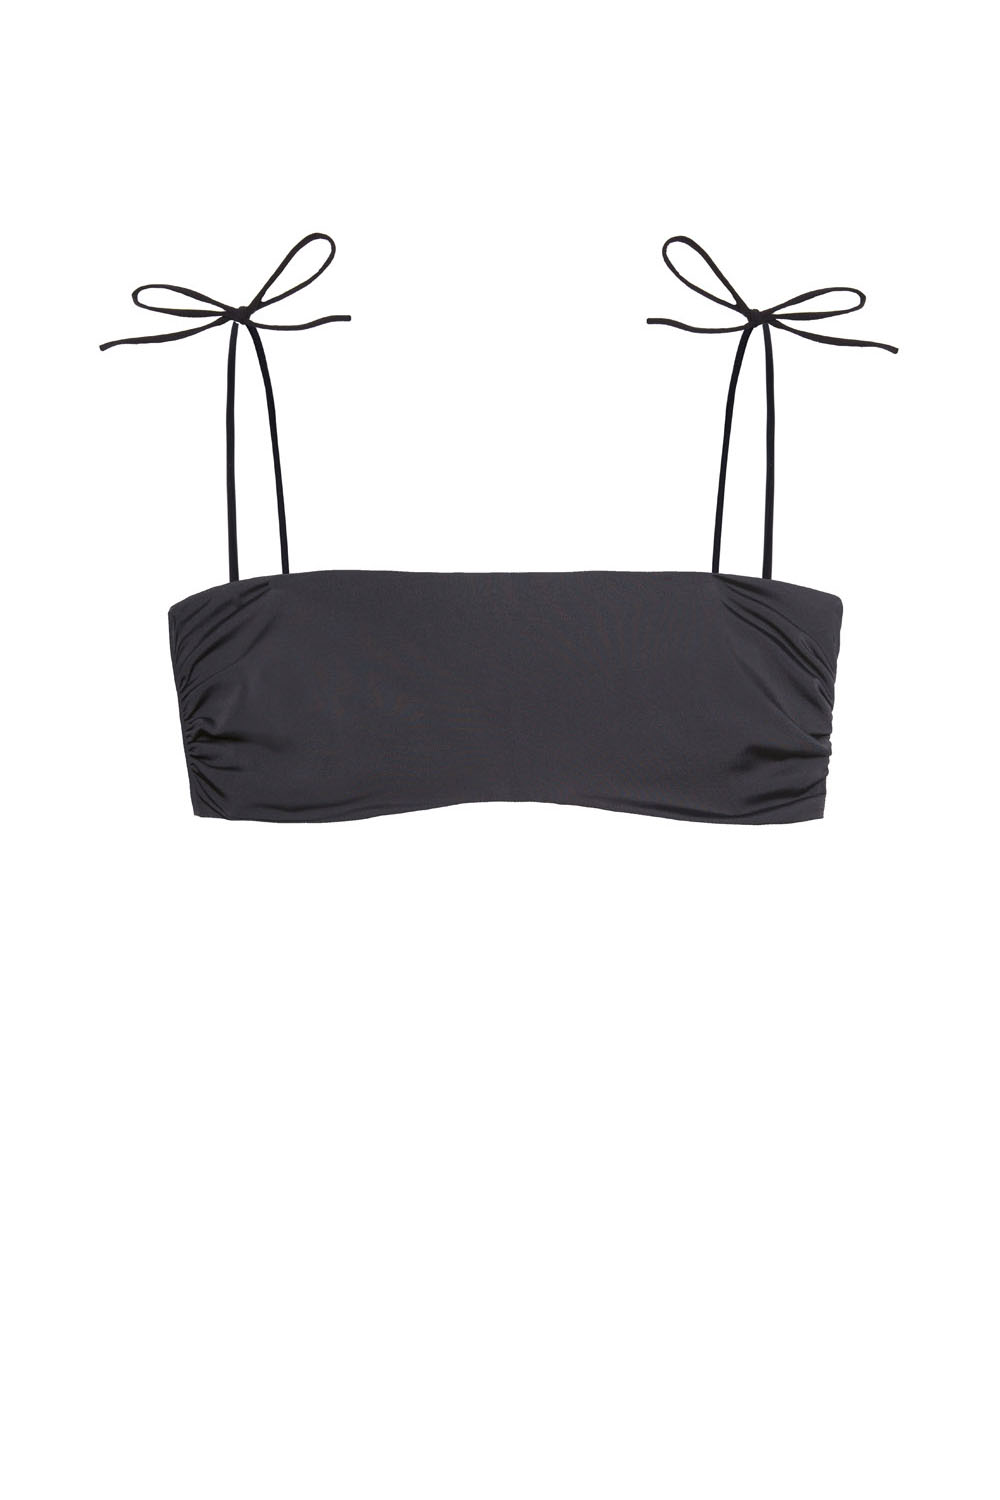 Sustainable Luxury Swimwear / Ropa de baño sostenible, eco bikini / bikini ecológico. Lio + Milos in blacksands, by NOW_THEN